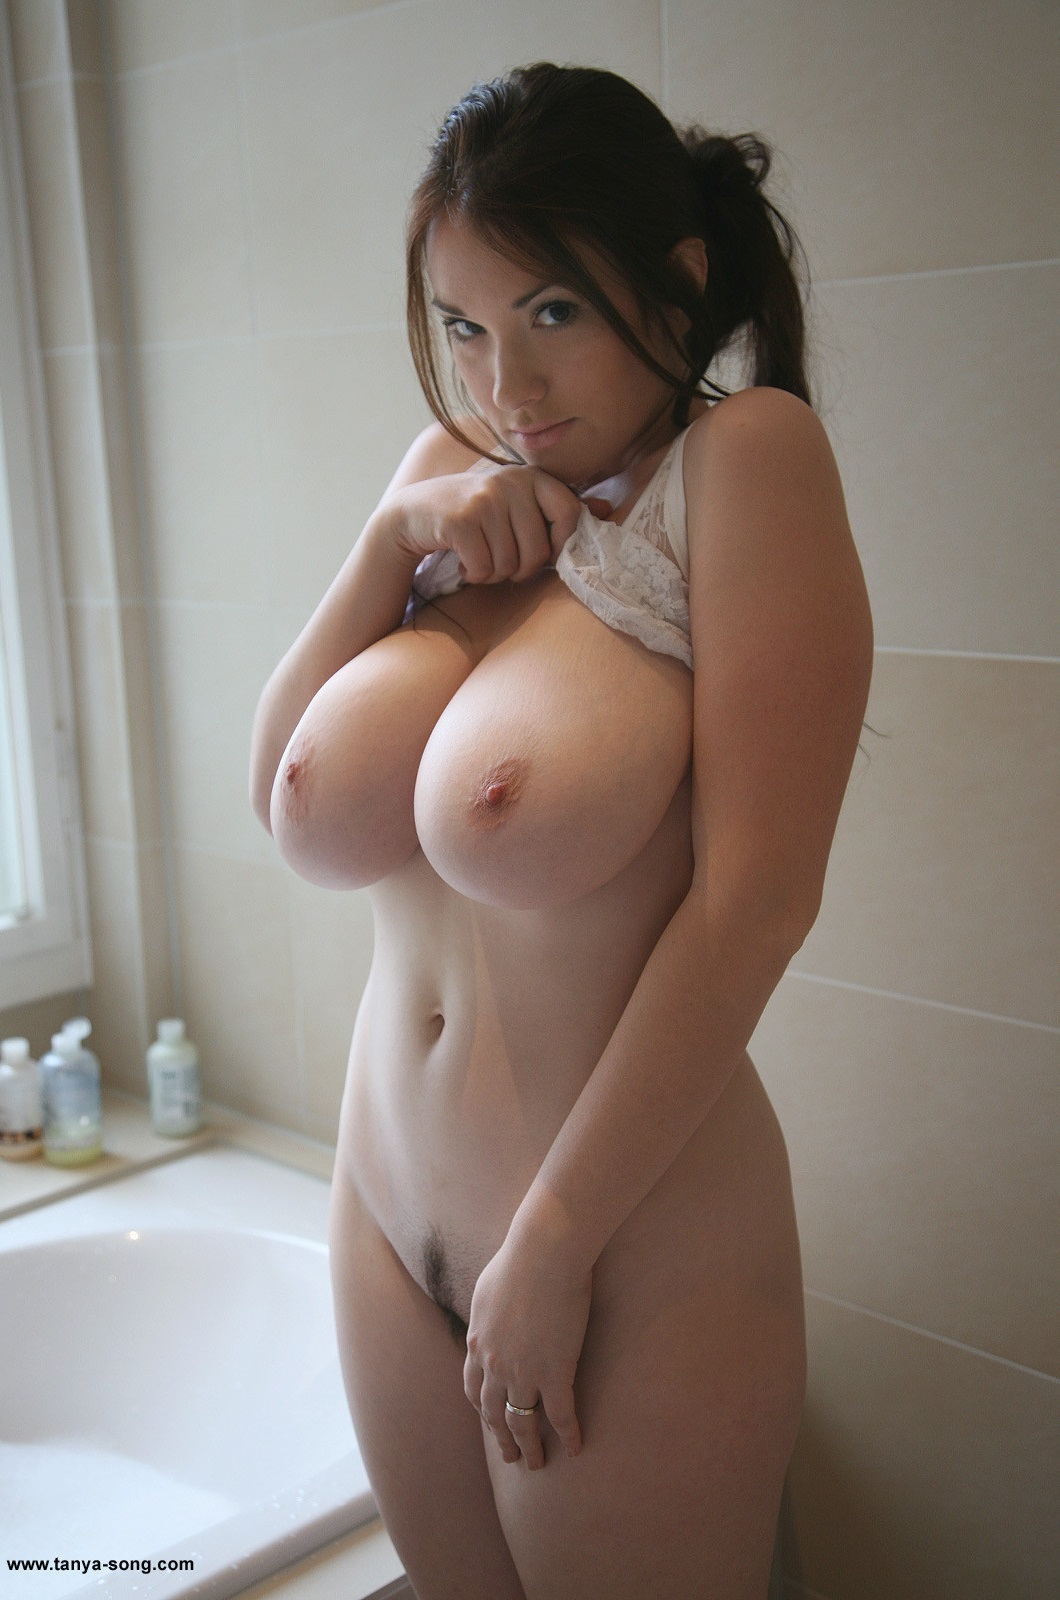 anna song nude pictures. rating = 9.11/10